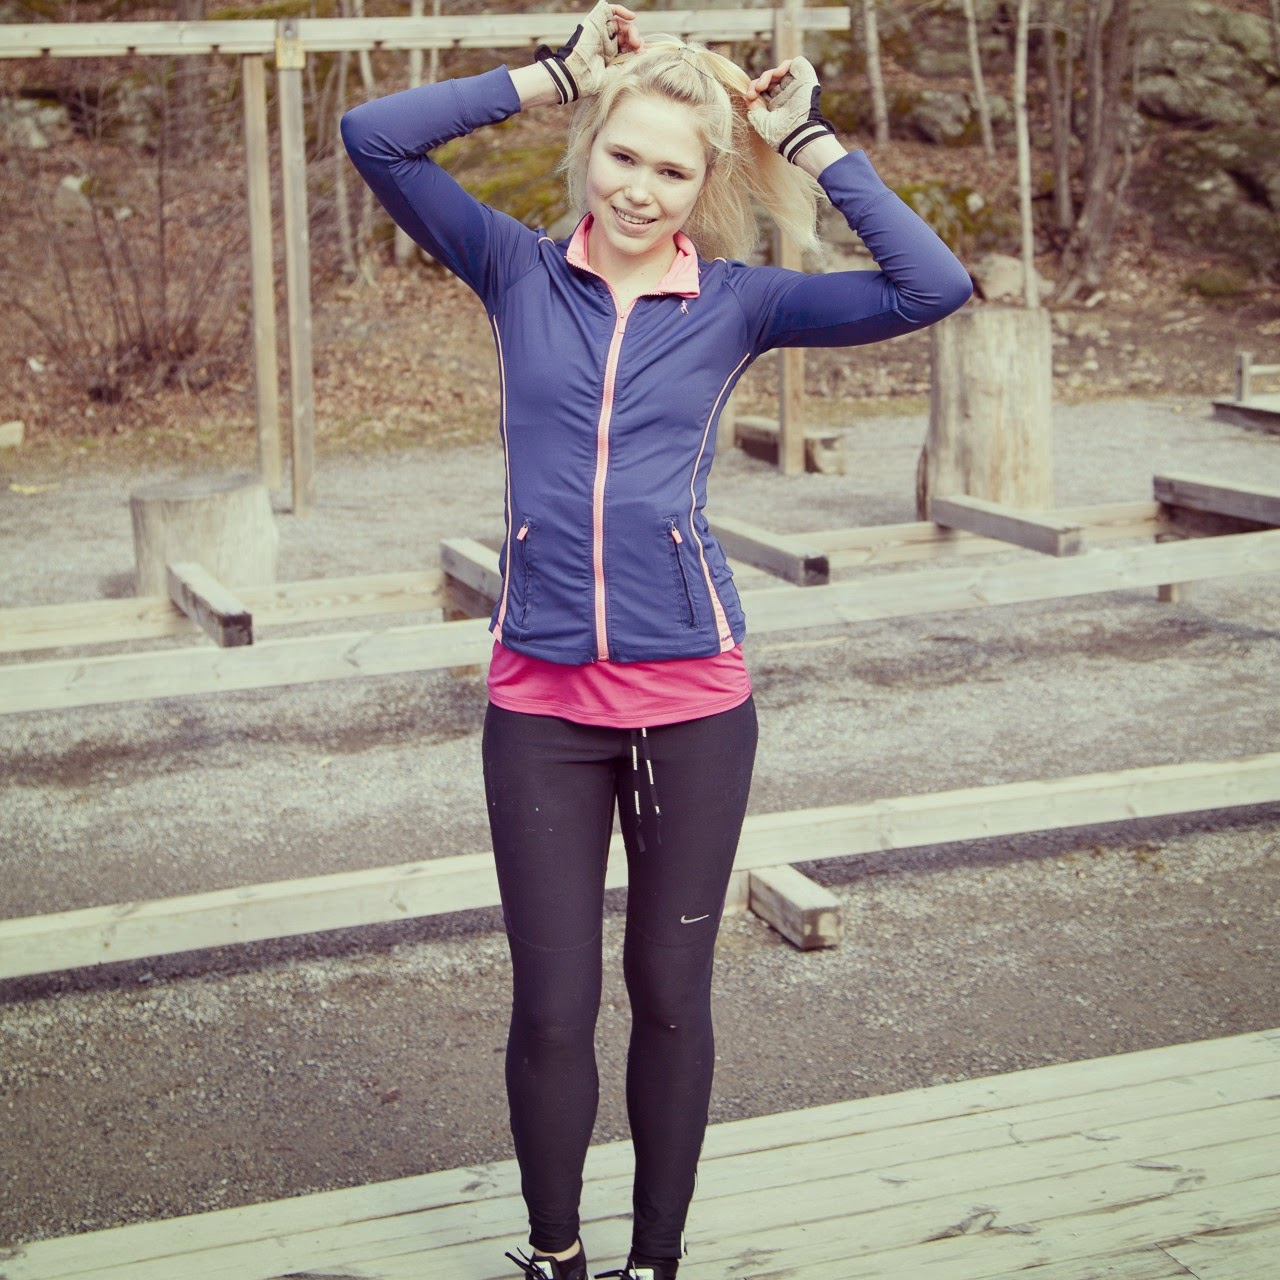 anorexia athletica About 50% of people who have been anorexic develop bulimia or bulimic   because anorexia athletica is not a formal diagnosis, it has not been studied as.